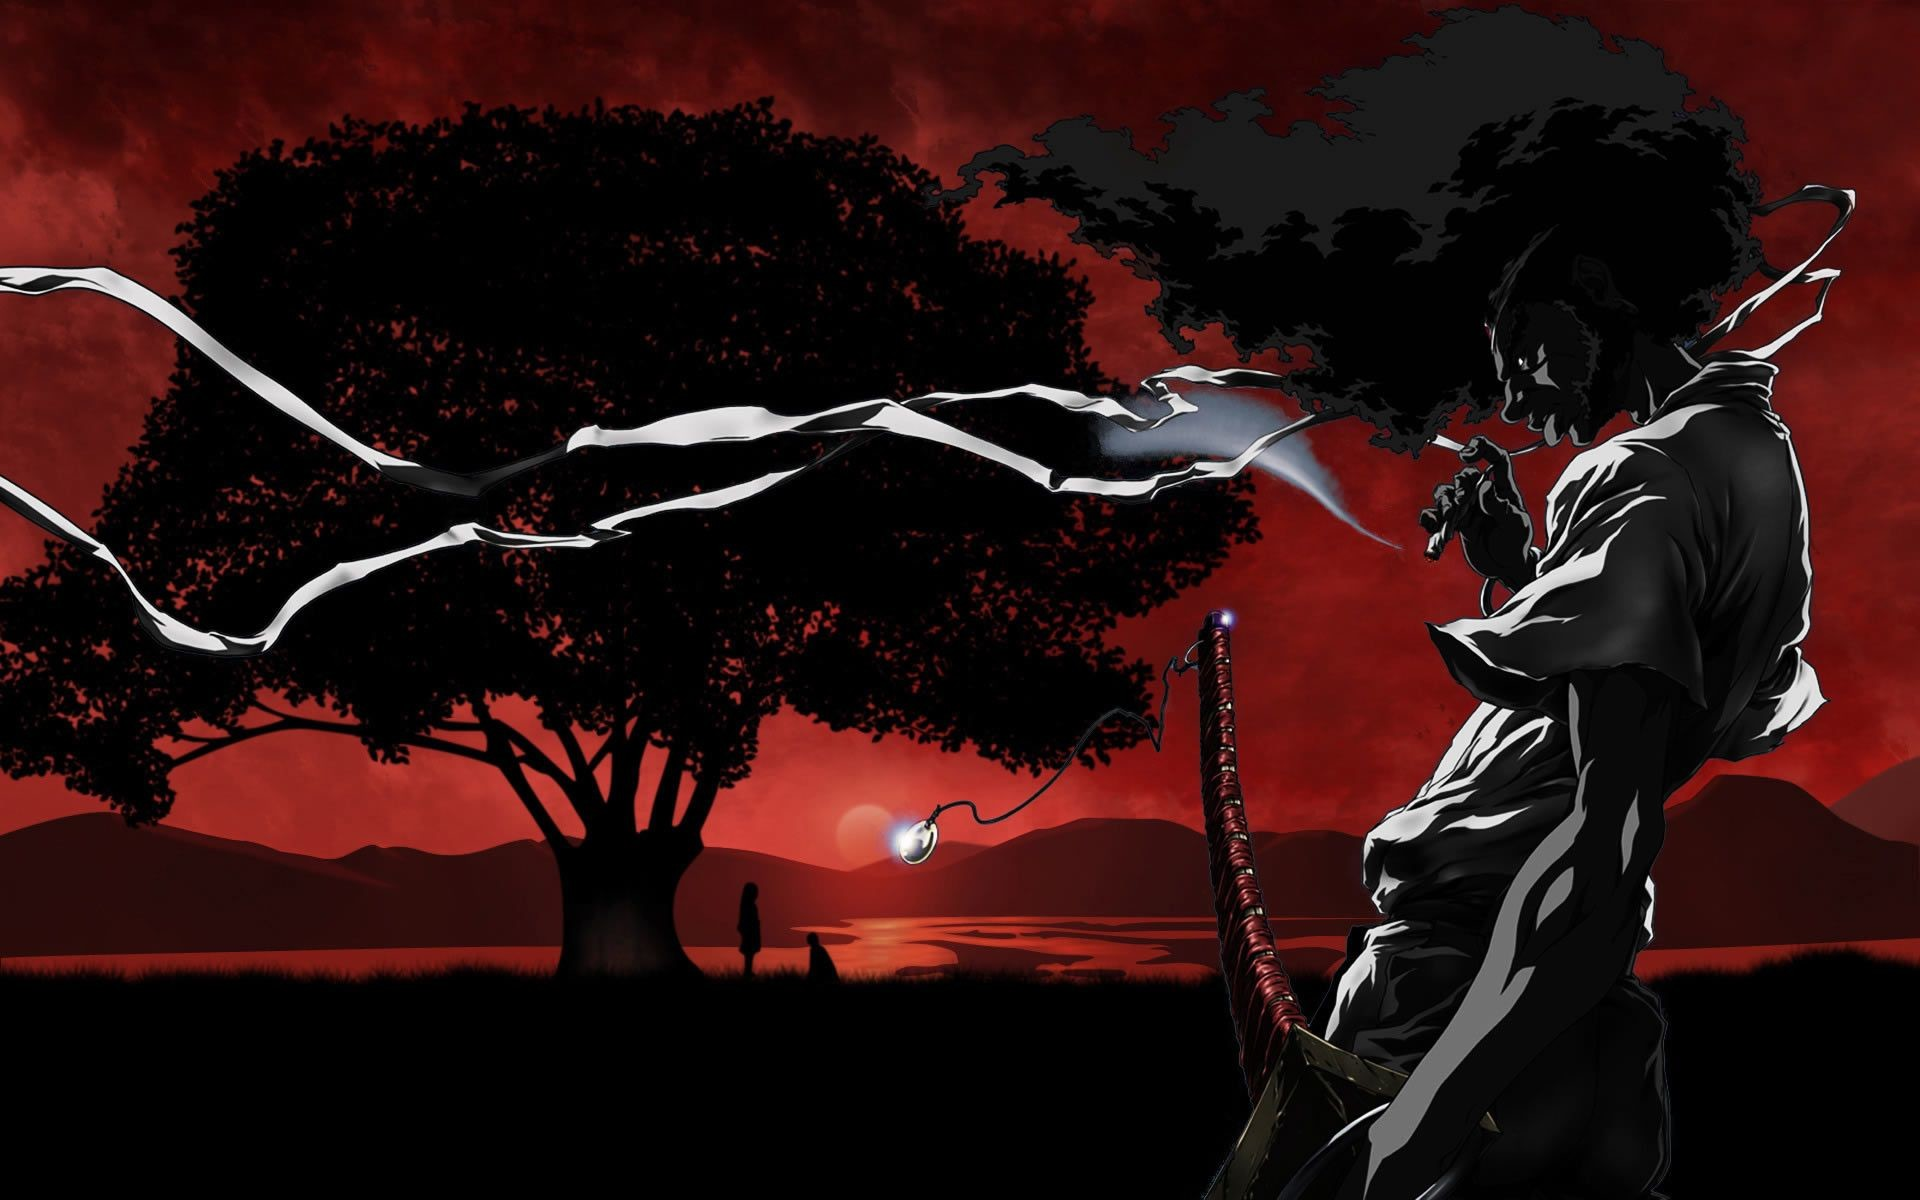 Epic Anime Wallpapers HD PixelsTalk Epic Anime Backgrounds Free Download  PixelsTalk Epic Anime Wallpaper Page 1920×1200